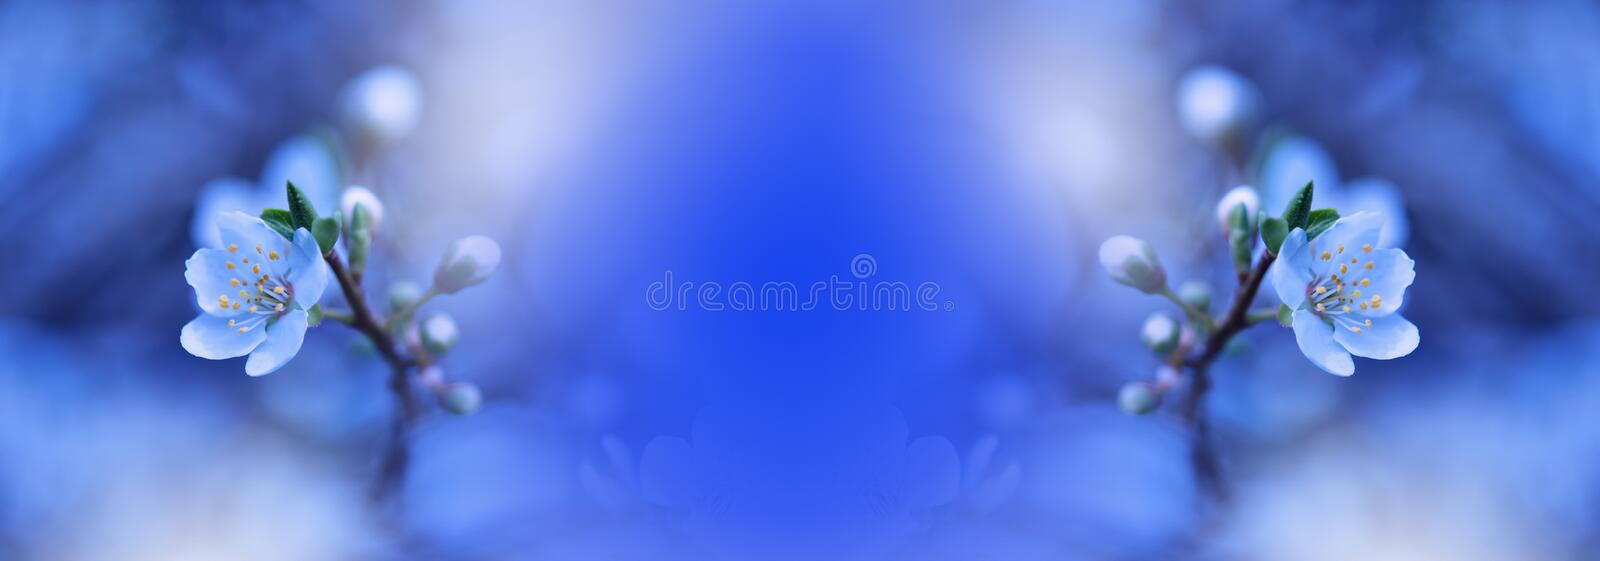 Spring nature blossom web banner or header.Abstract macro.Artistic Blue Background.Fantasy design.Colorful Wallpaper.Beautiful. stock photo